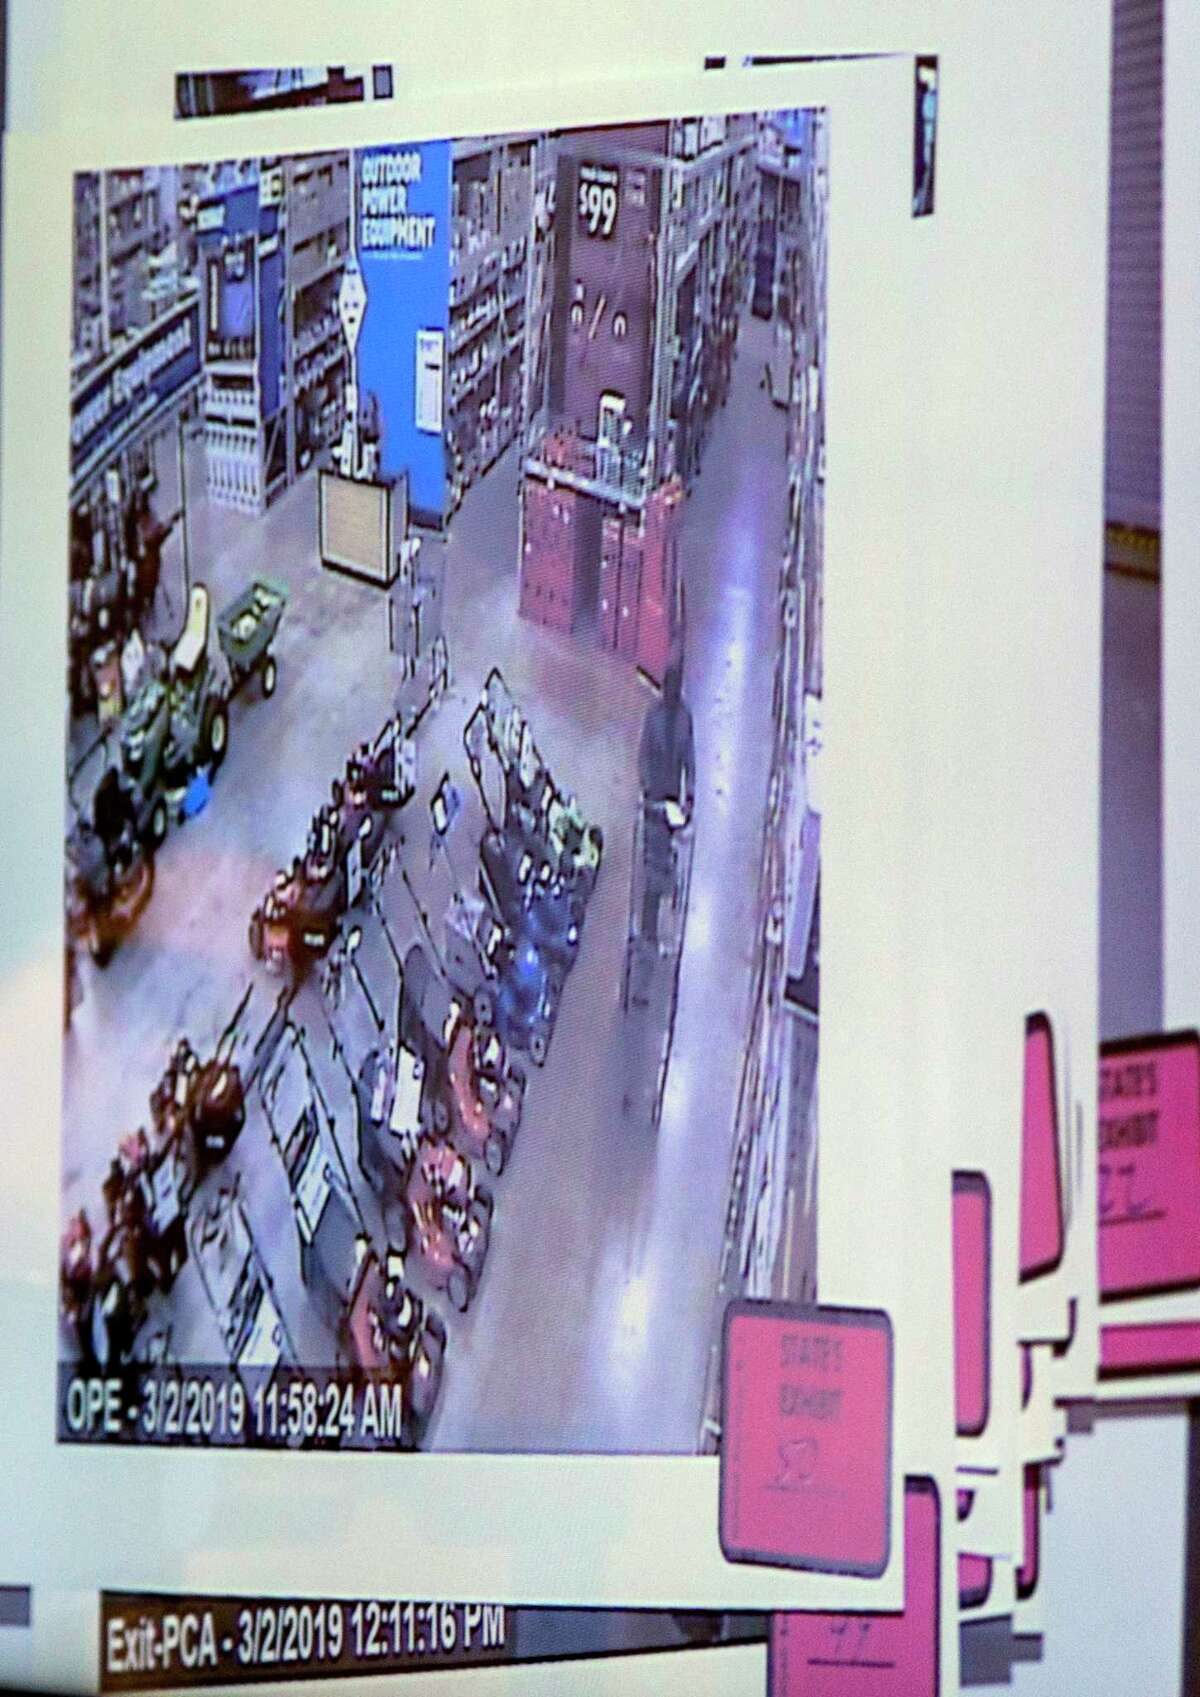 An evidence photo of USAF Reserve Maj. Andre McDonald shopping at a Lowe's store is shown Tuesday, March 27, 2019 on a screen during a bond reduction hearing for McDonald in Judge Frank Castro?•s 399th state District Court in the Cadena-Reeves Criminal Justice Center. McDonald, accused of tampering with evidence in the disappearance of his wife, Andreen McDonald who is missing and presumed dead by authorities, had his $2 million bond reduced to $300,000 by the judge. The judge added additional conditions to McDonald?•s bond including GPS monitoring, house arrest and no contact with his daughter.